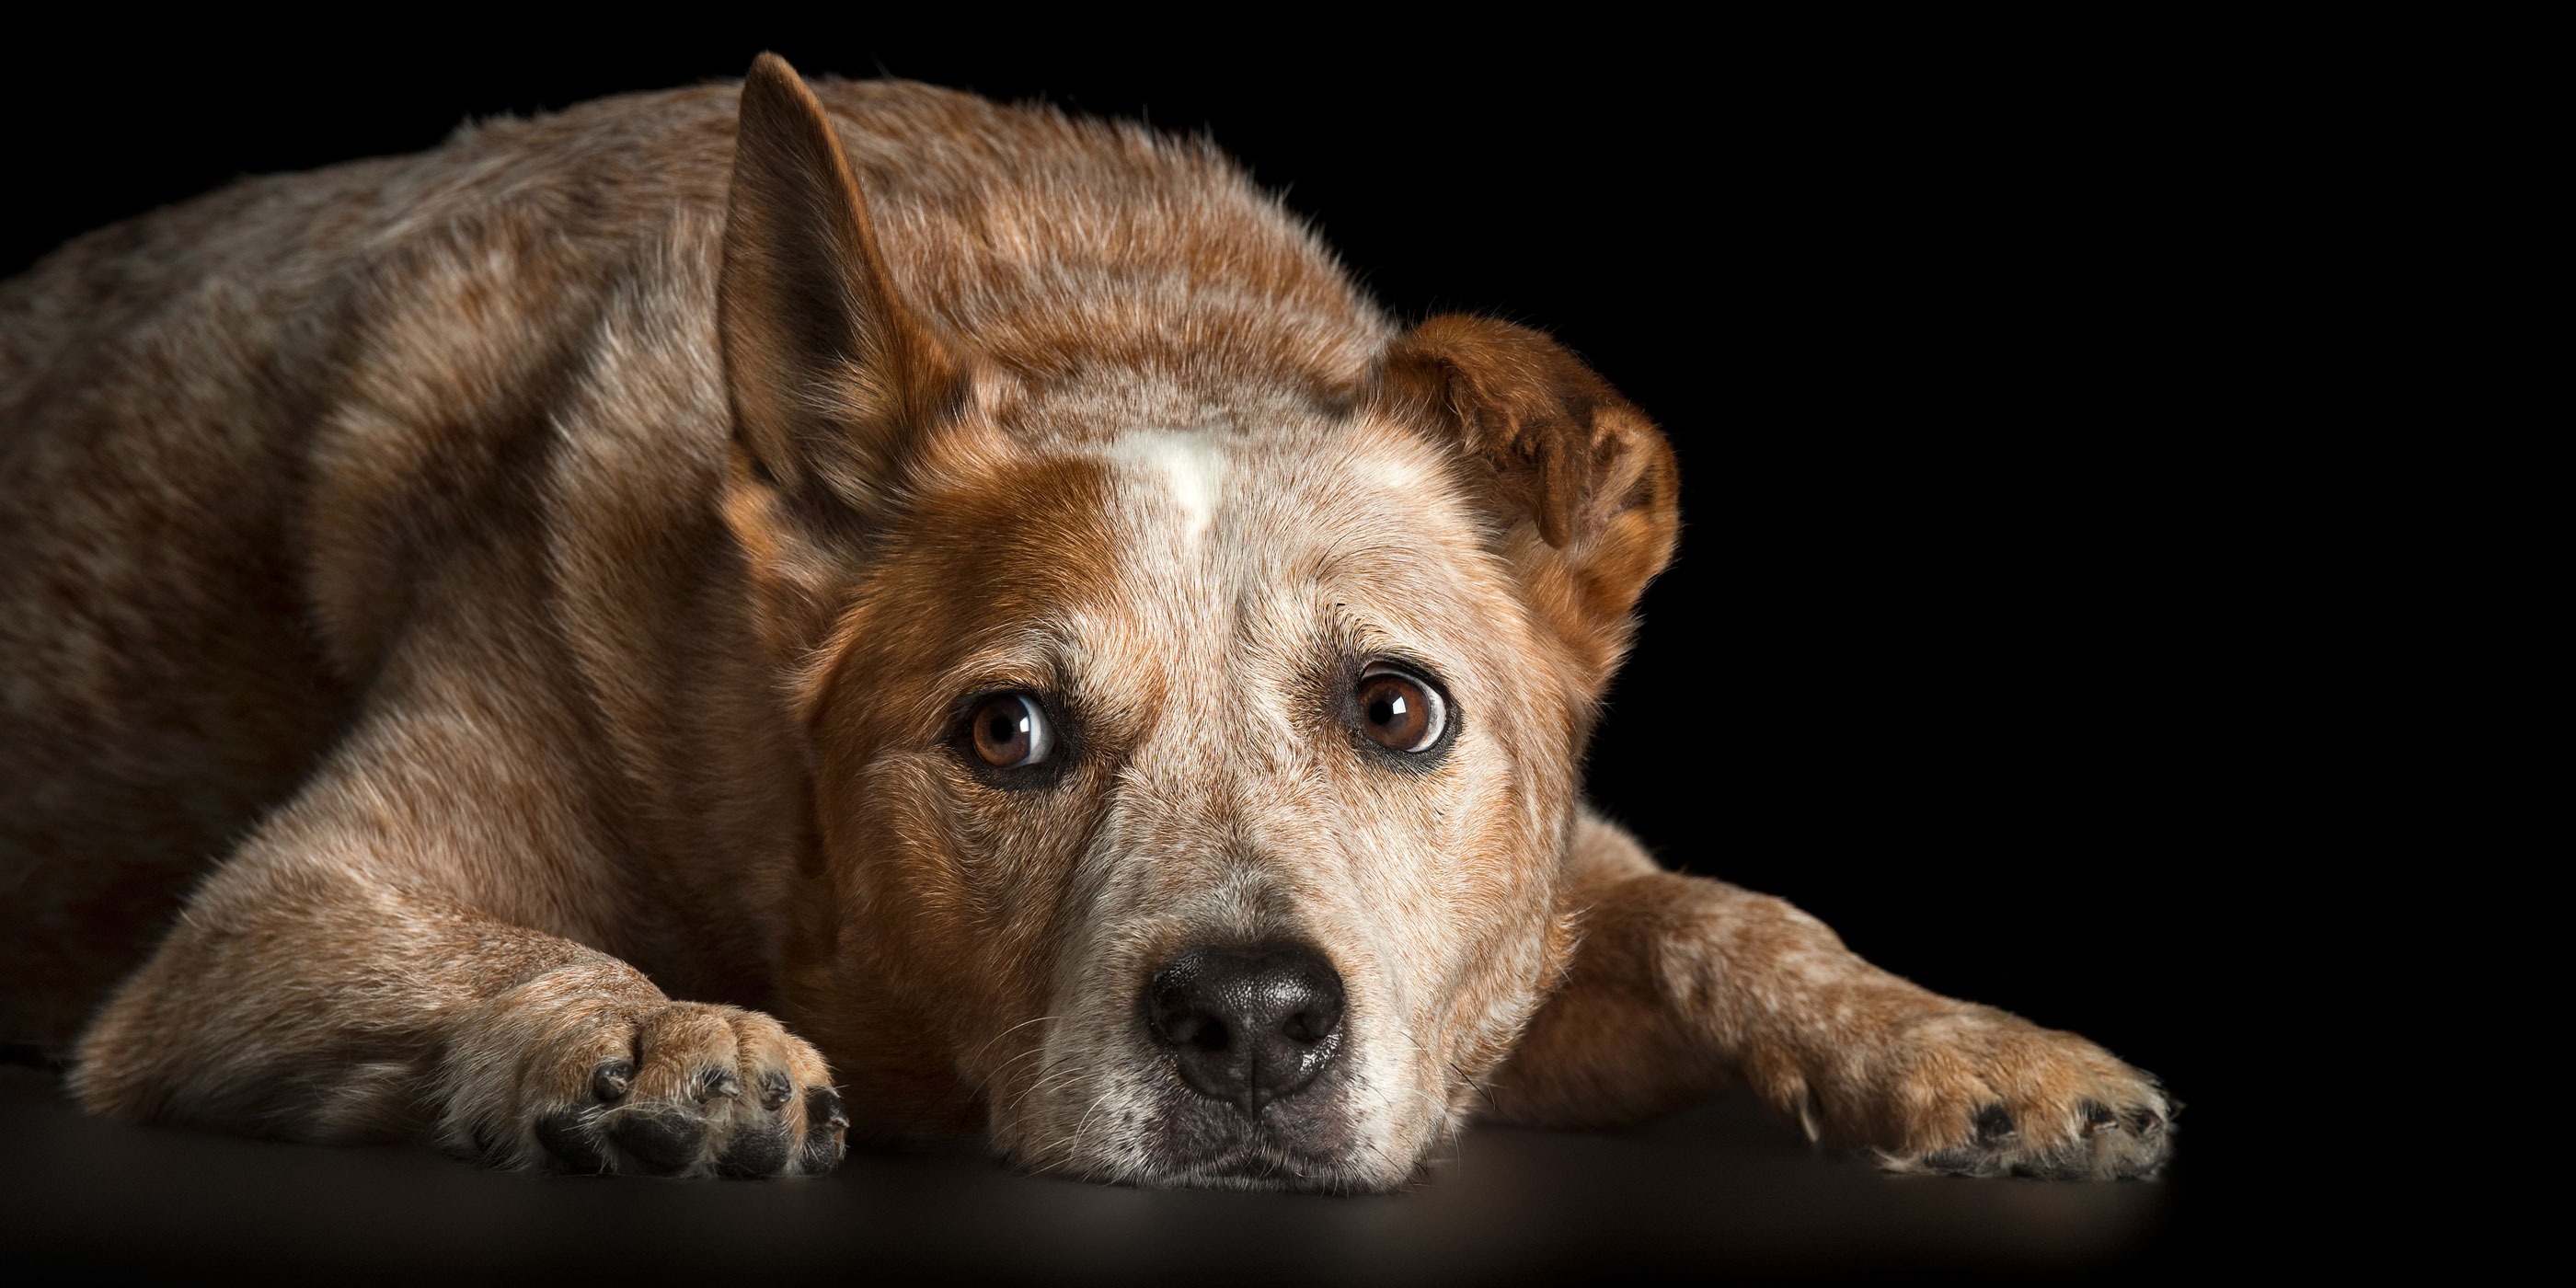 lying down sweet faced red cattle dog